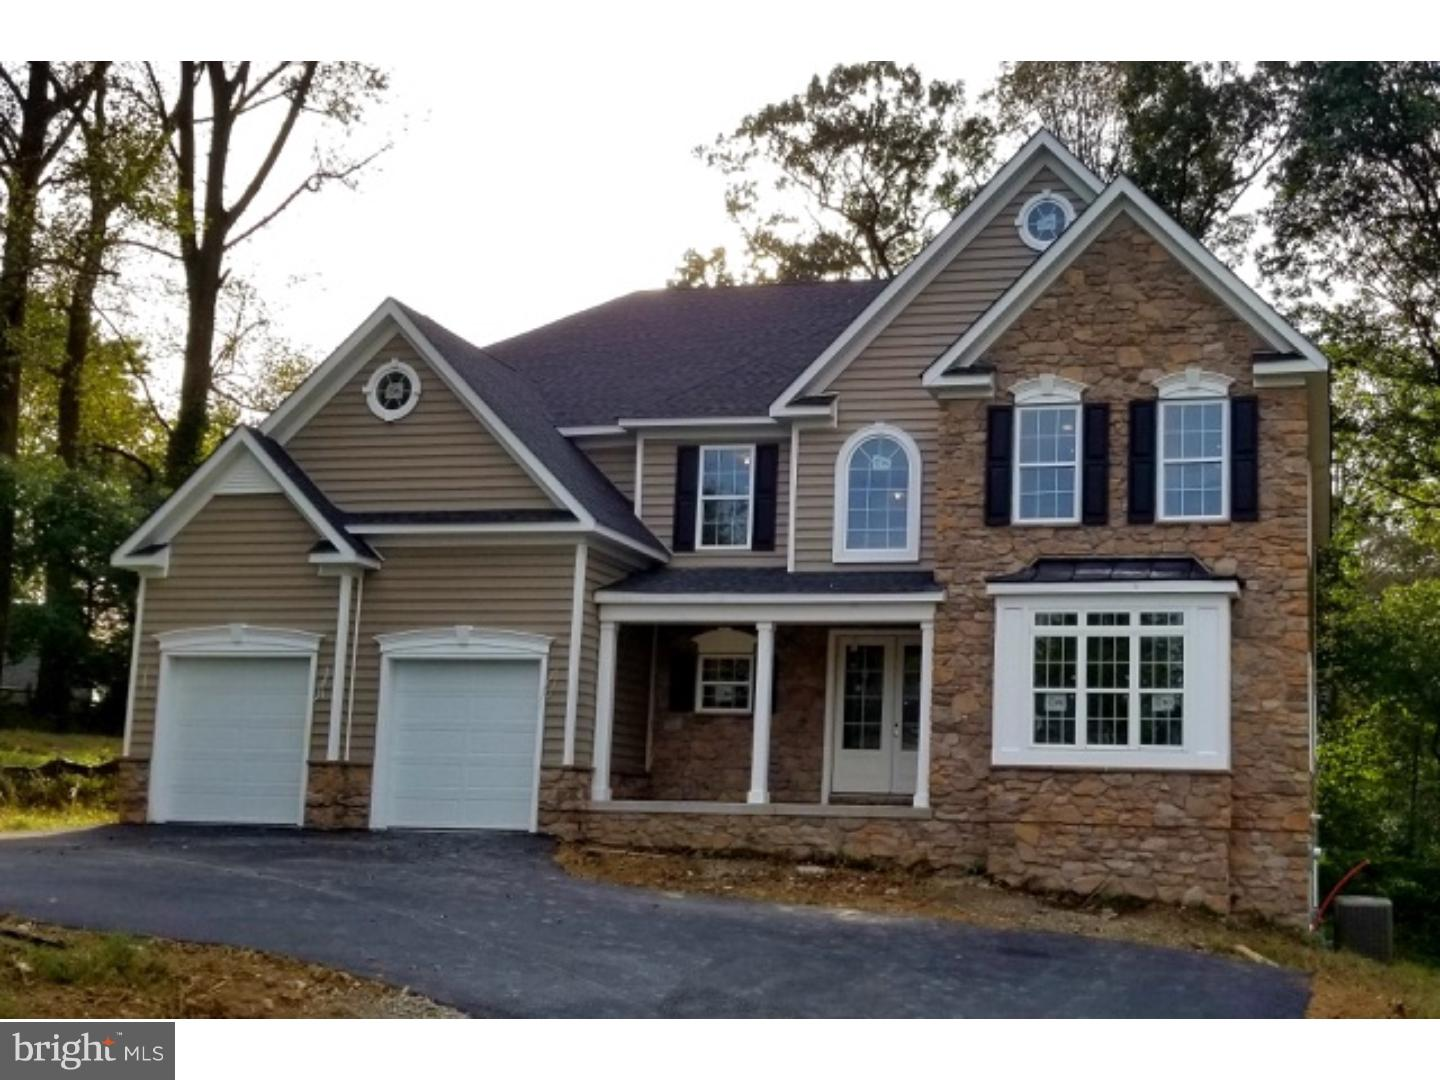 Single Family Home for Sale at 968 OLD WILMINGTON Road Hockessin, Delaware 19707 United States